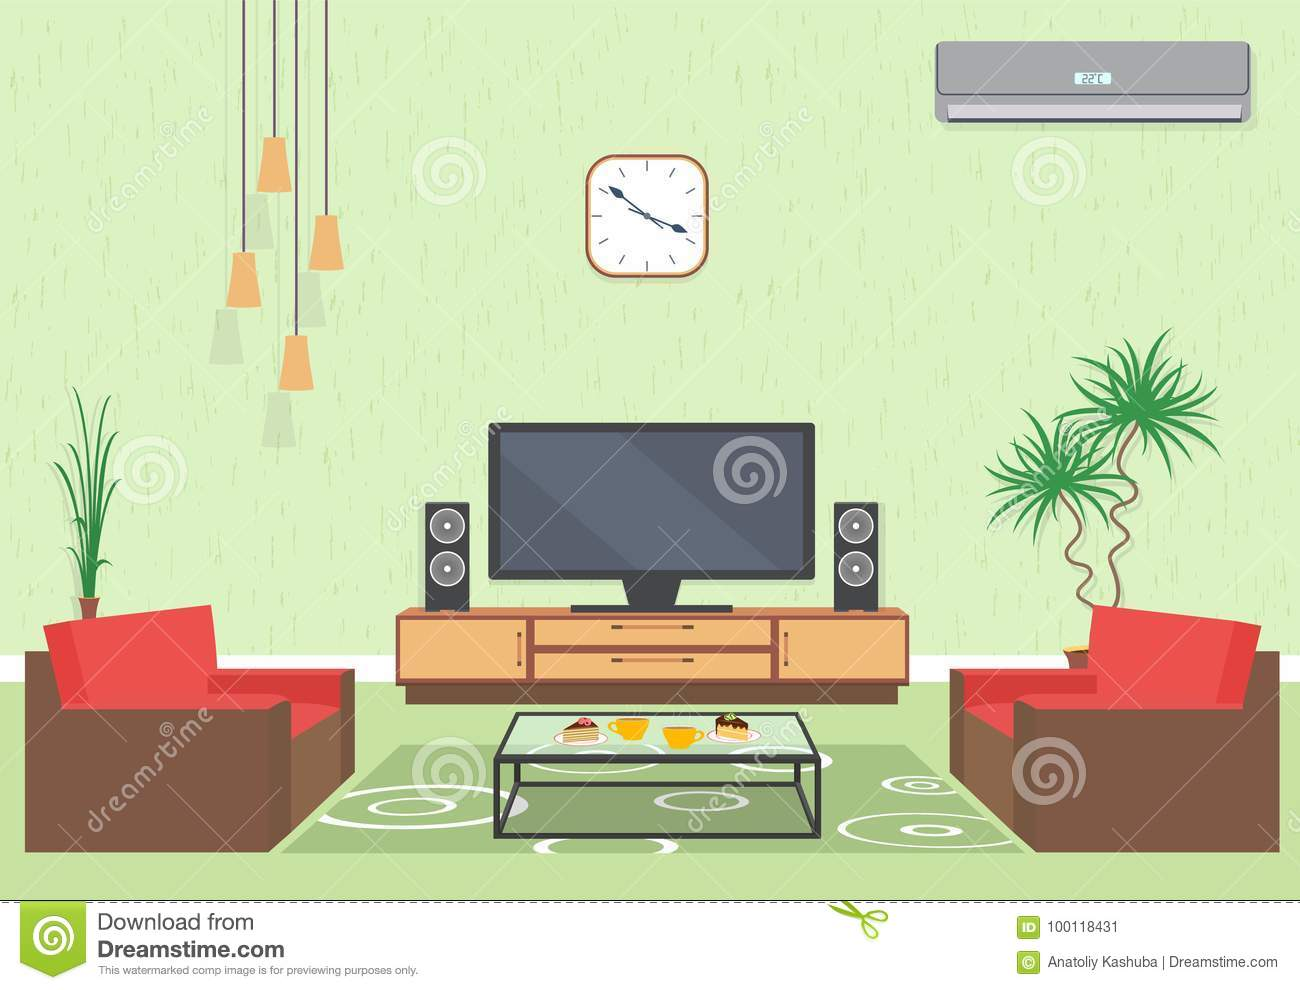 Interior Design Of Living Room In Flat Style With Furniture Sofa Table Tv Flower Air Conditioning And Clock Stock Vector Illustration Of Family Live 100118431